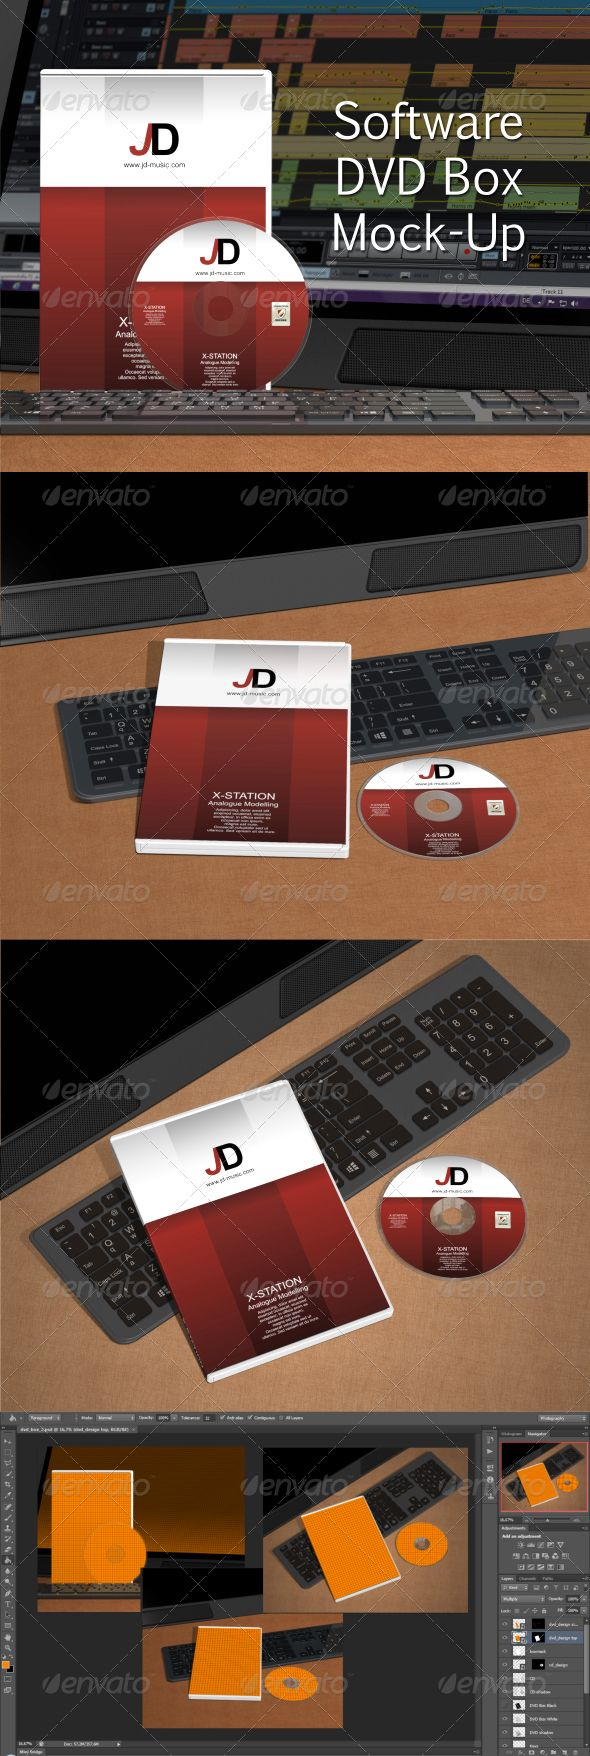 Download Software DVD Box Mock-Up by Fusionhorn Realistic Software ...